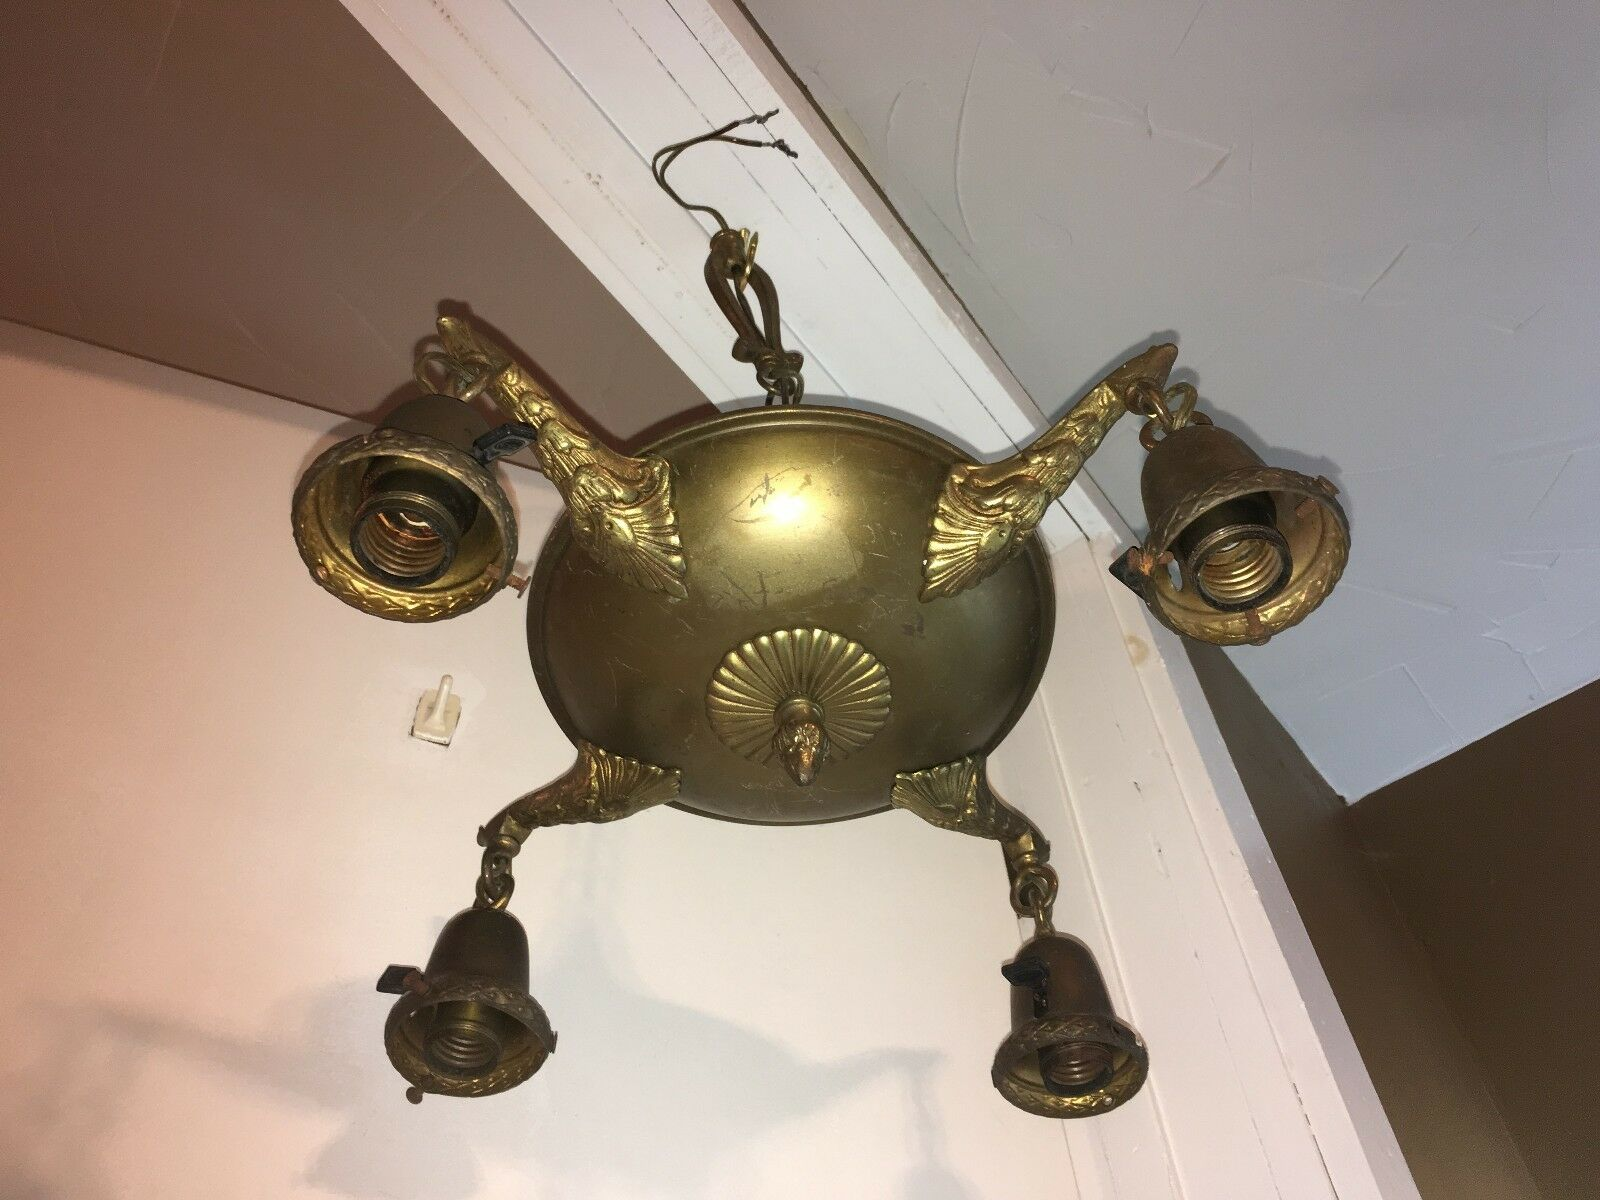 Antique Art Nouveau Brass Chandelier 4 Ceiling Lighting Fixture Ornate Pan VTG